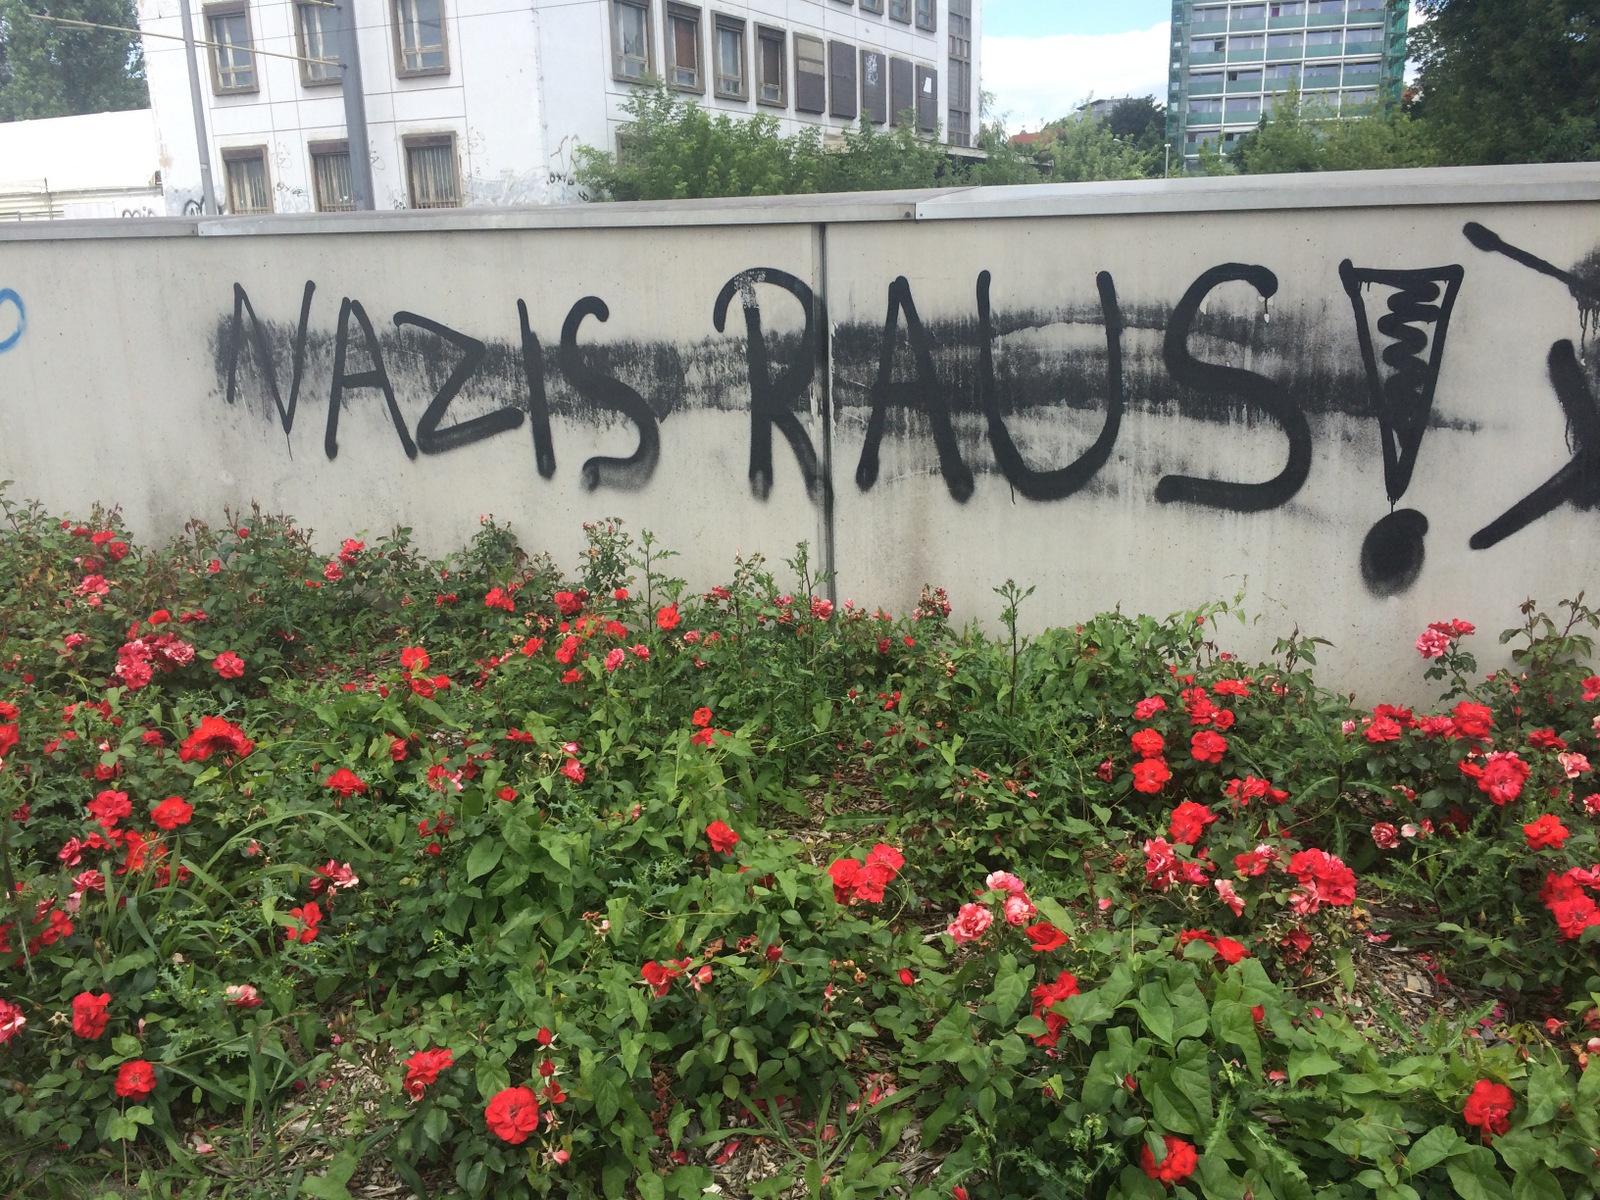 """Anti-immigrant protests in Dresden, Germany have also inspired counter-protests and graffiti like this that says 'Nazis Out!"""", July 7, 2016. (H. Murdock/VOA)"""